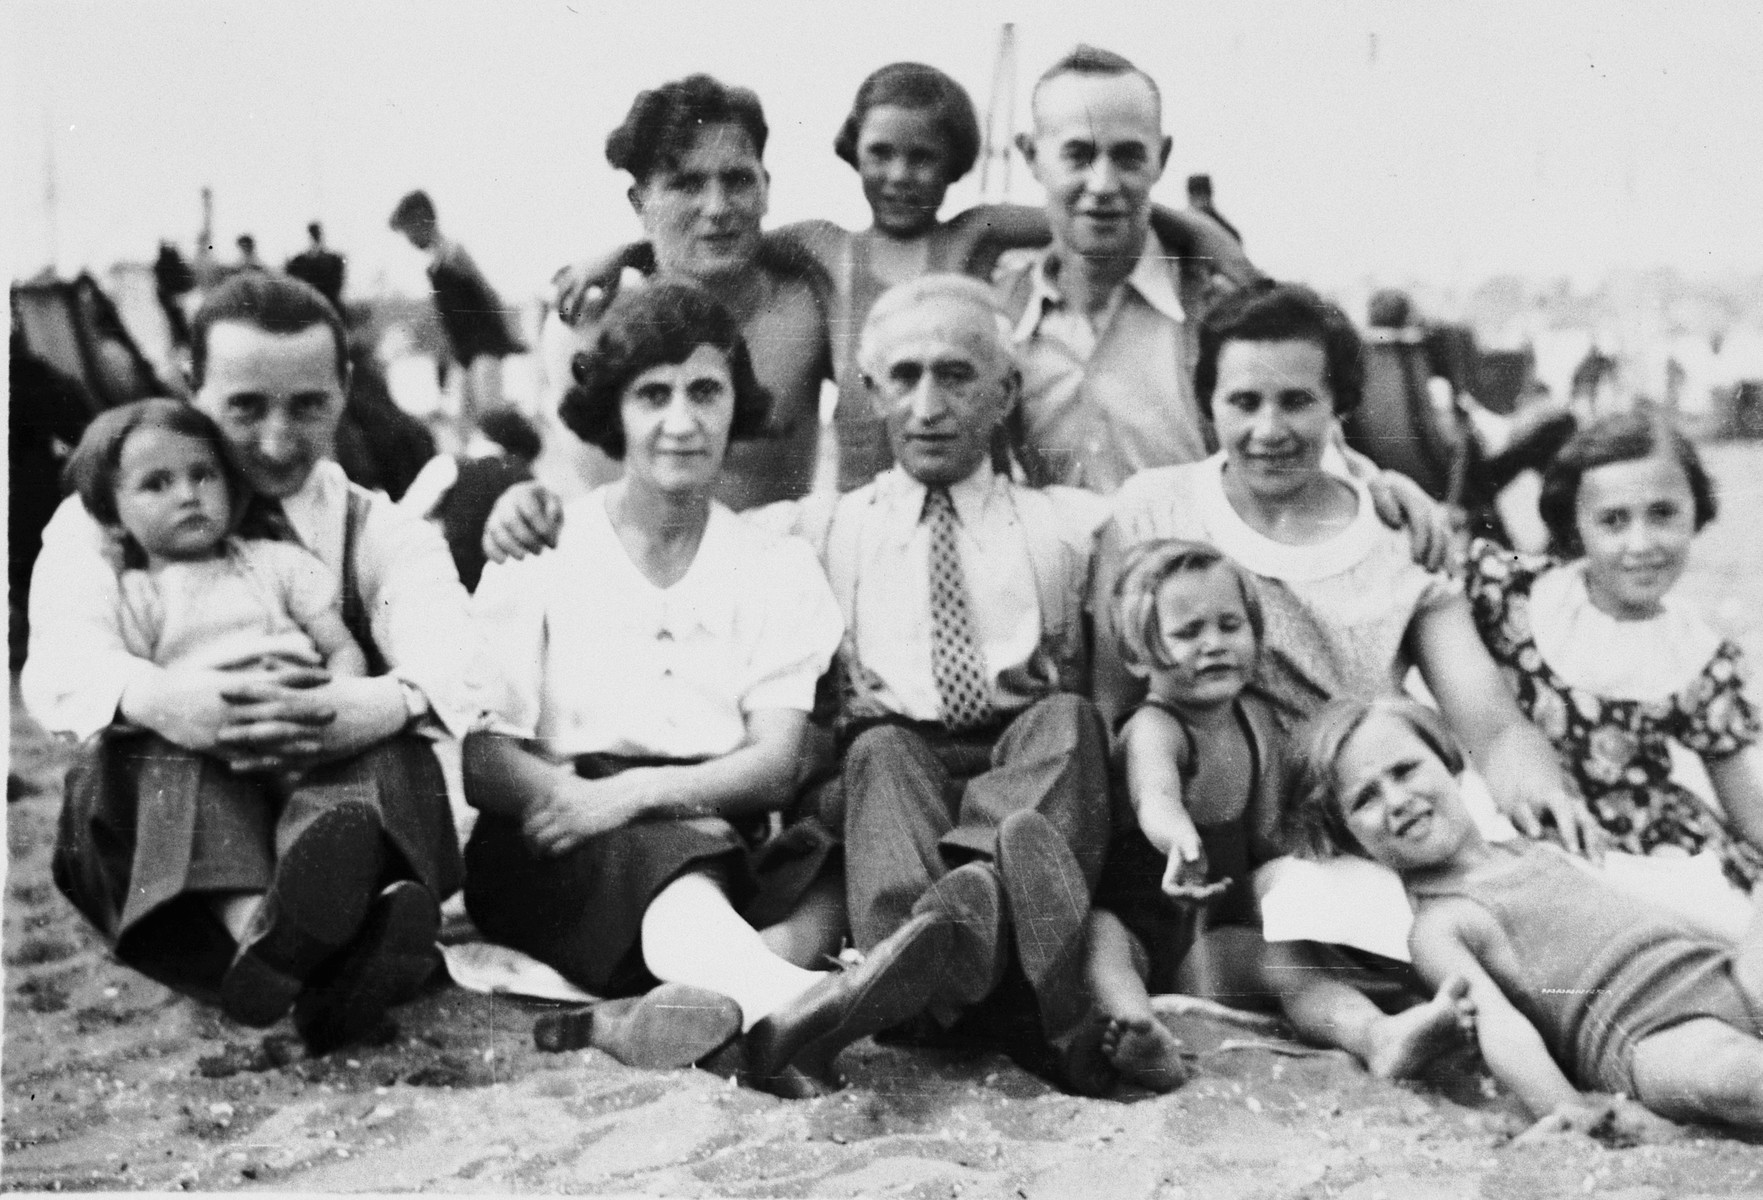 Members of the Altenberg family pose at the beach.  Pictured behind are Jack, Beccy and Bernard.  In front are Lidia (child), Moshe, Feigele, Max and Netty.  The children at the right are Frederica, Anna and Rebecca, in front.